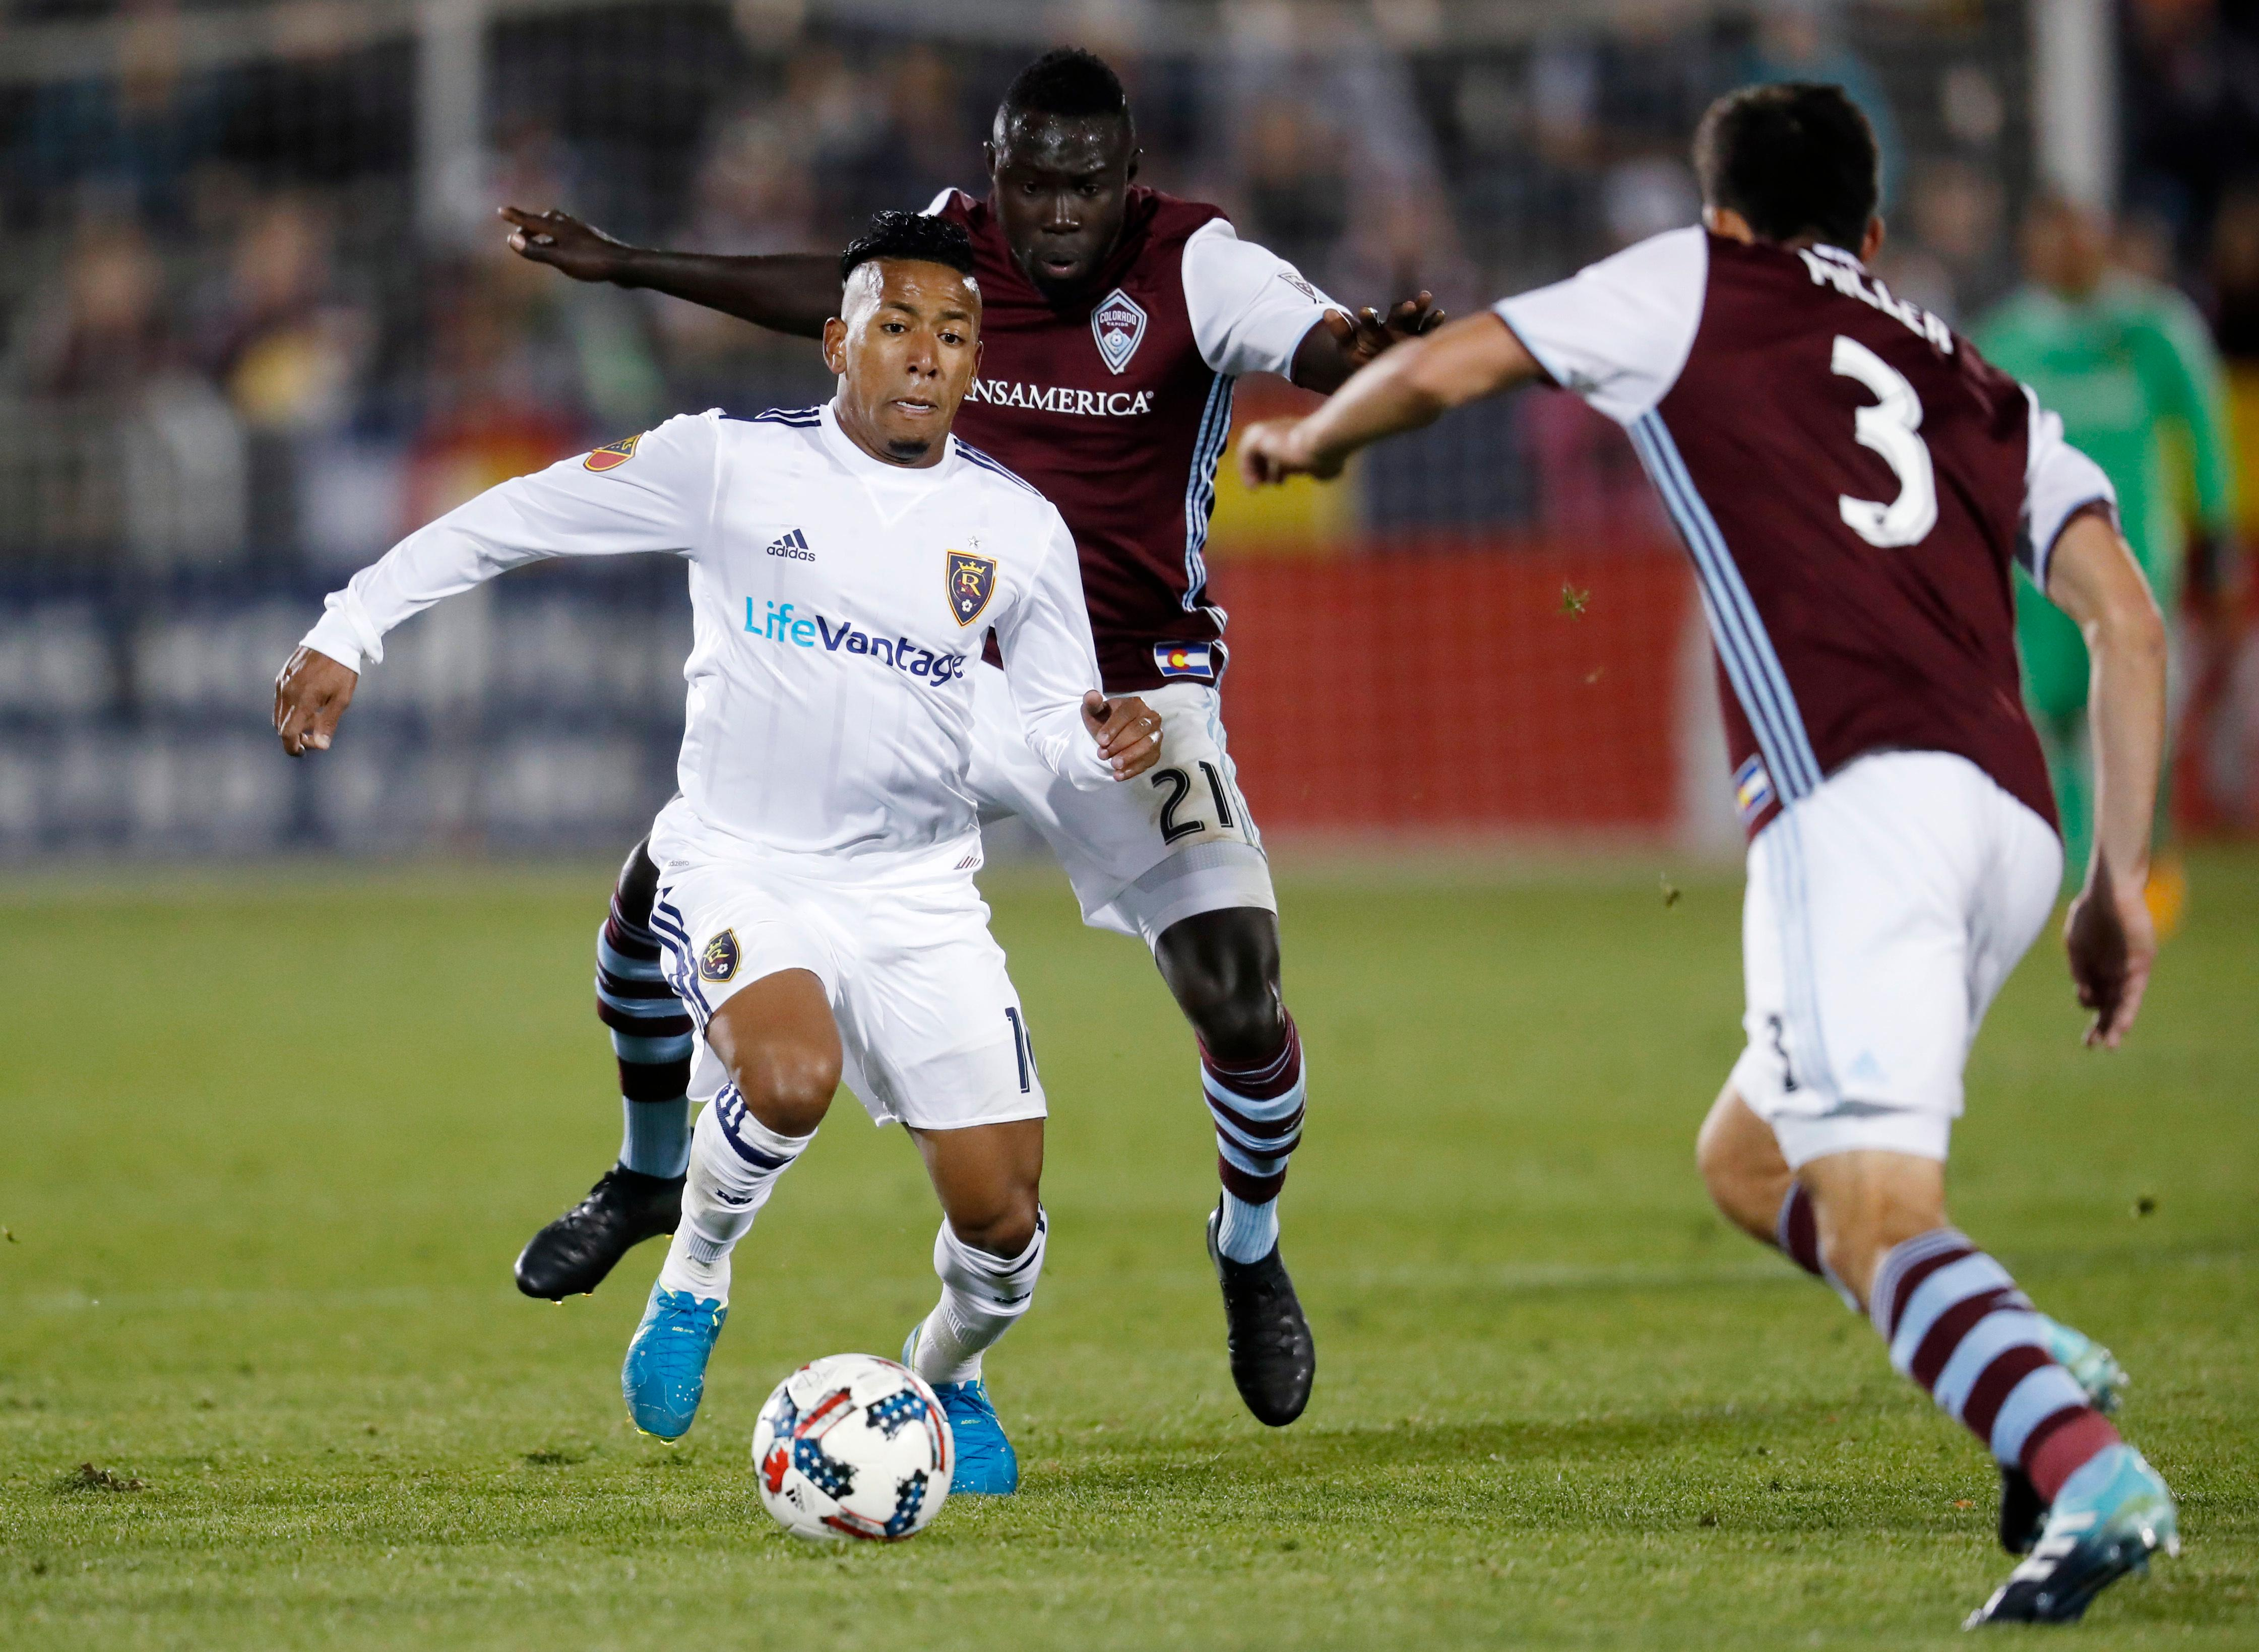 Real Salt Lake forward Joao Plata, front left, drives down the pitch with the ball past Colorado Rapids defender Bismark Adjei-Boateng, back left, as defender Eric Miller comes in to disrupt the play in the second half of an MLS soccer match Sunday, Oct. 15, 2017, in Commerce City, Colo. The Rapids won 1-0. (AP Photo/David Zalubowski)